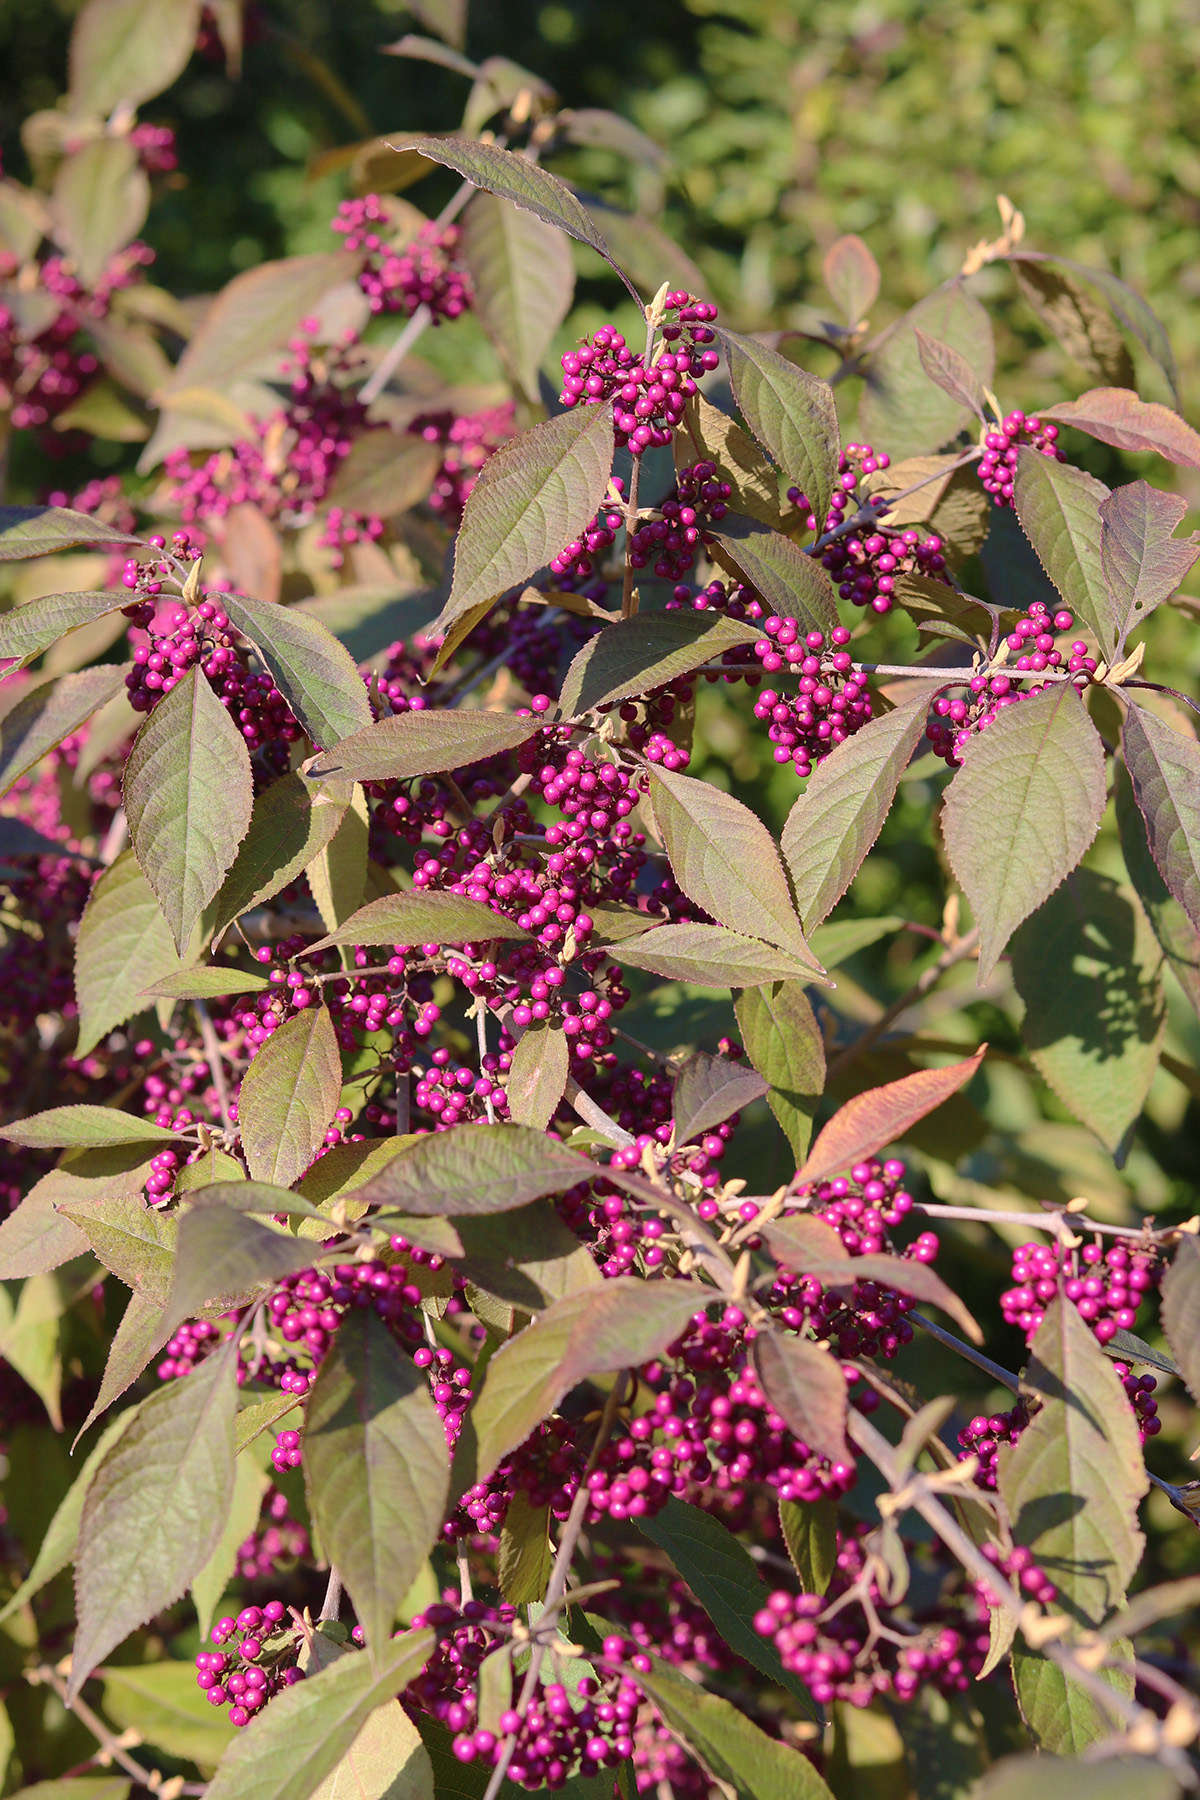 Fruit begins to set in summer while a beautyberry shrub is in full foliage, and gradually turns a bright, neon violet.